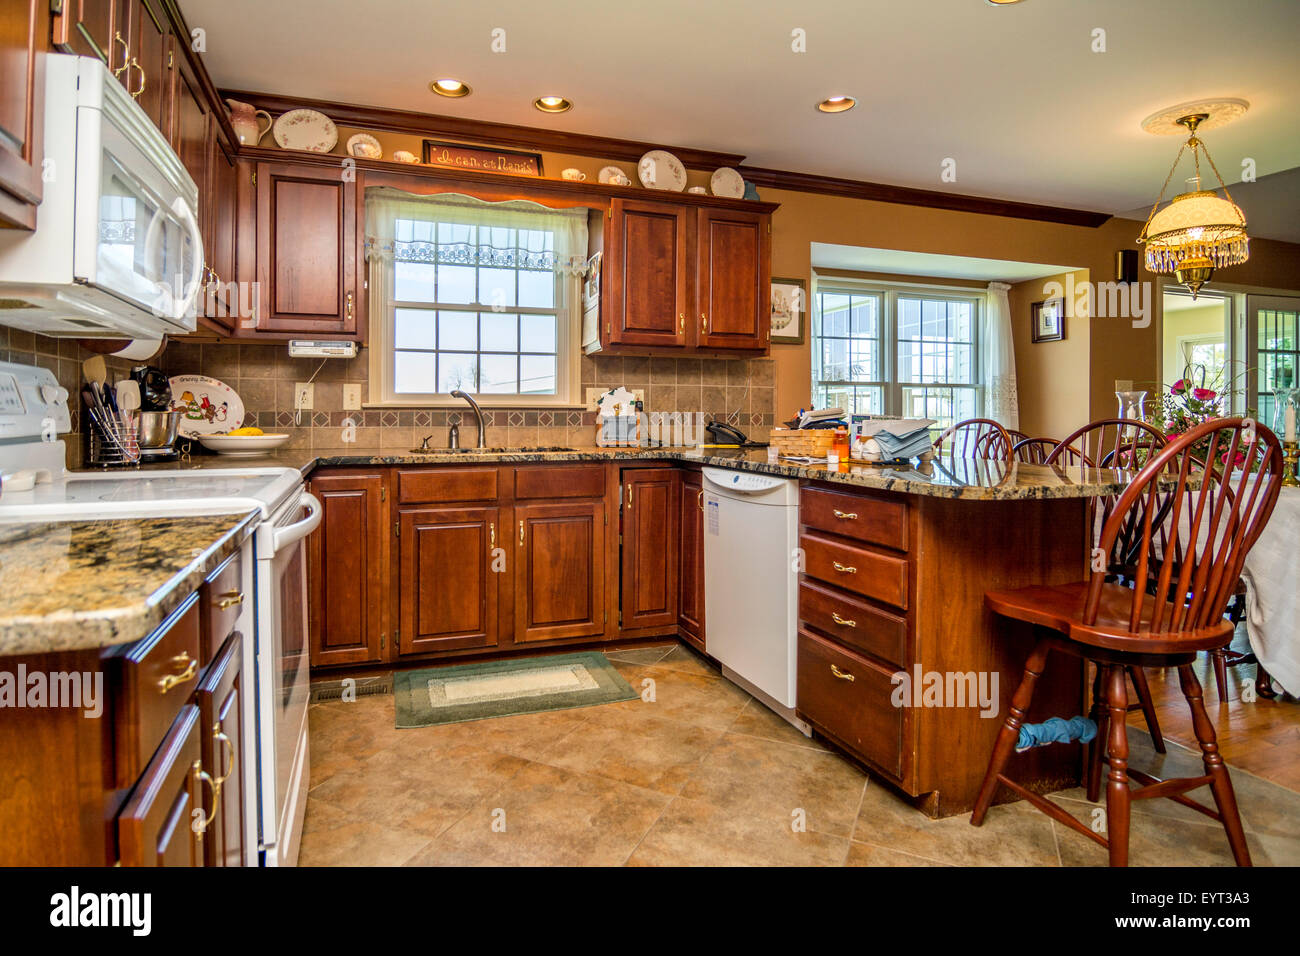 Kitchen In An American Middle Class House Stock Photo 85966667 Alamy